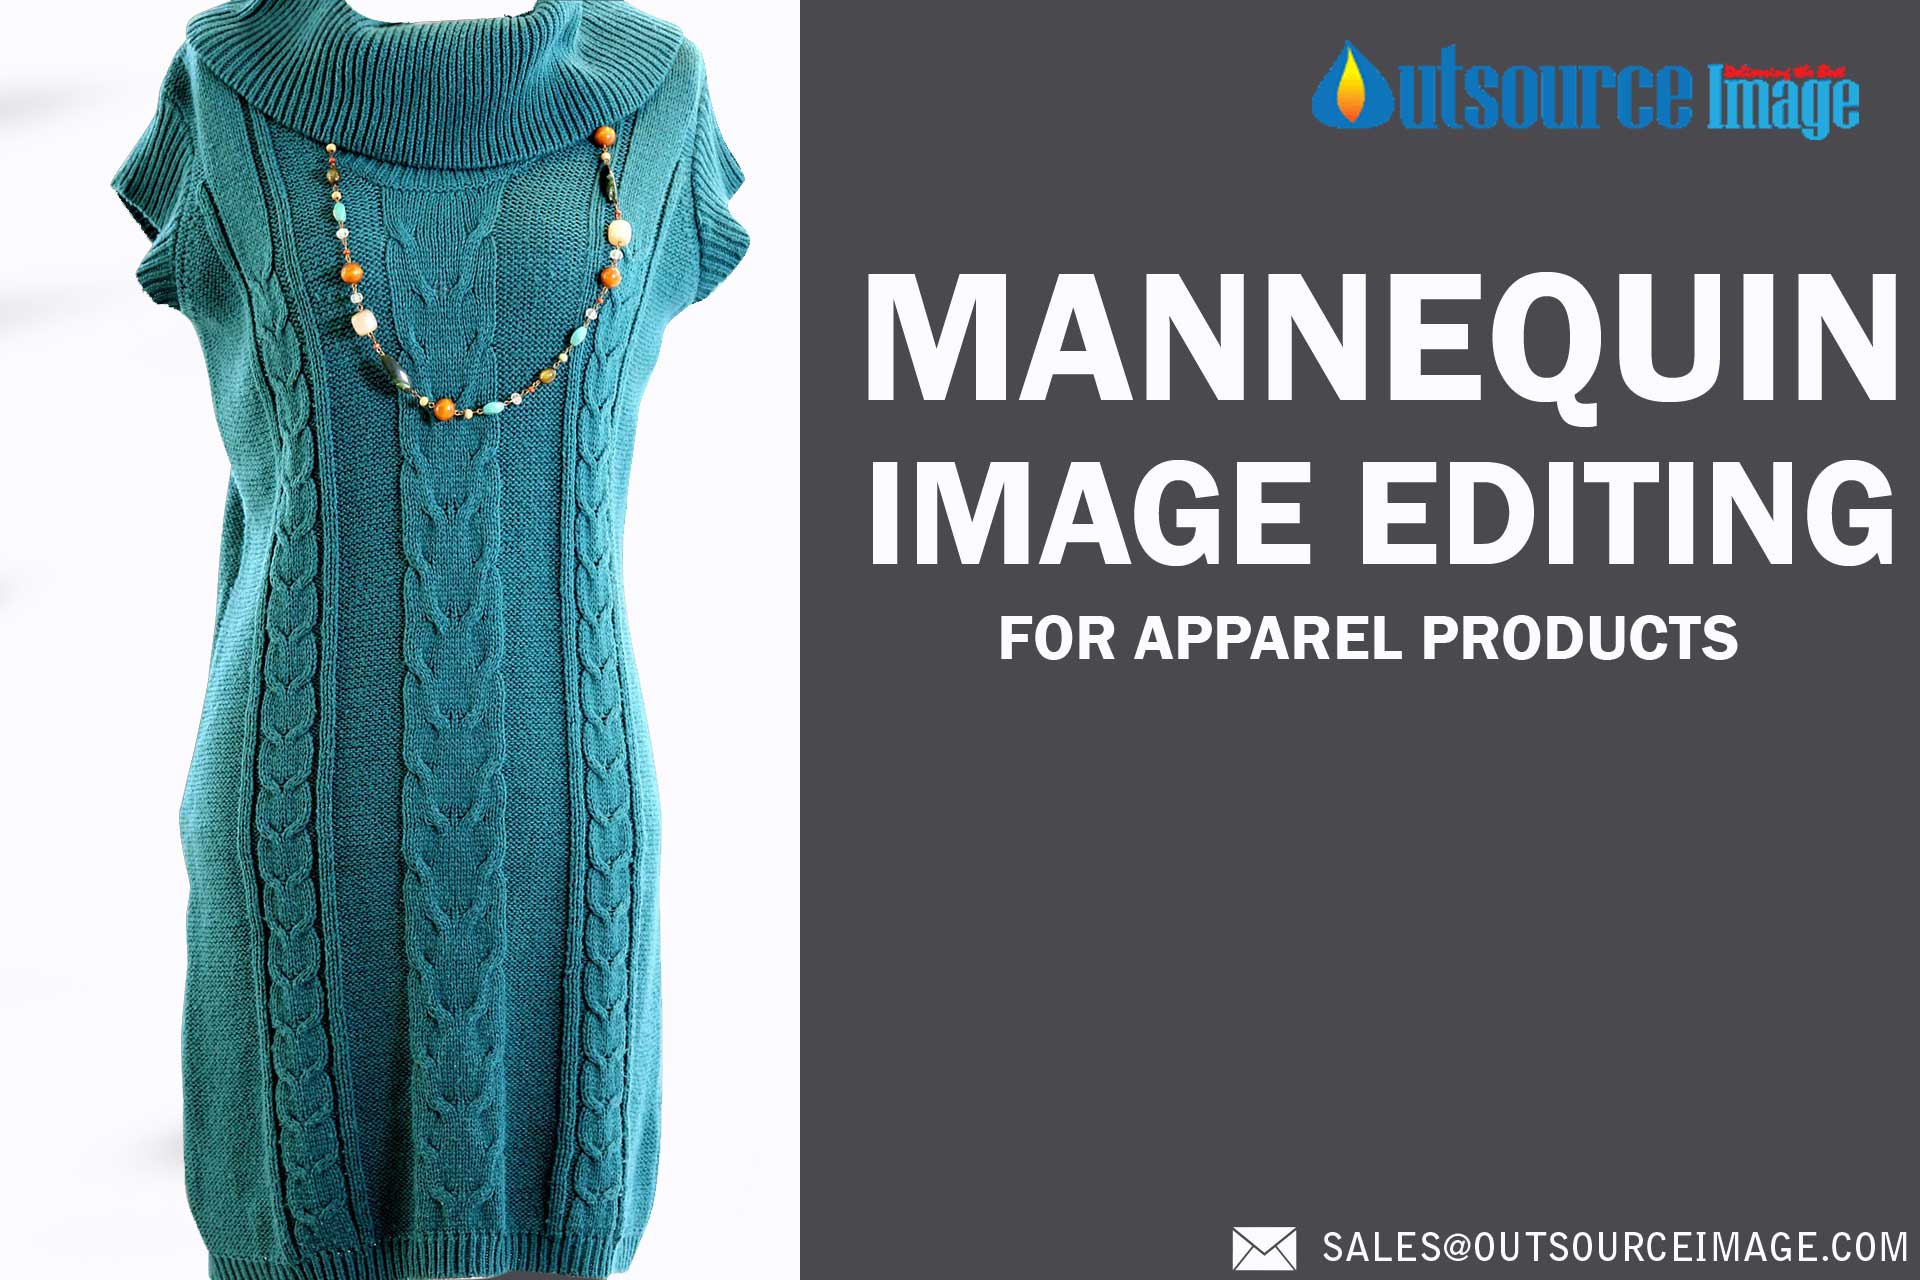 Apparel Photo Editing Services   Apparel Product Photo Editing Services